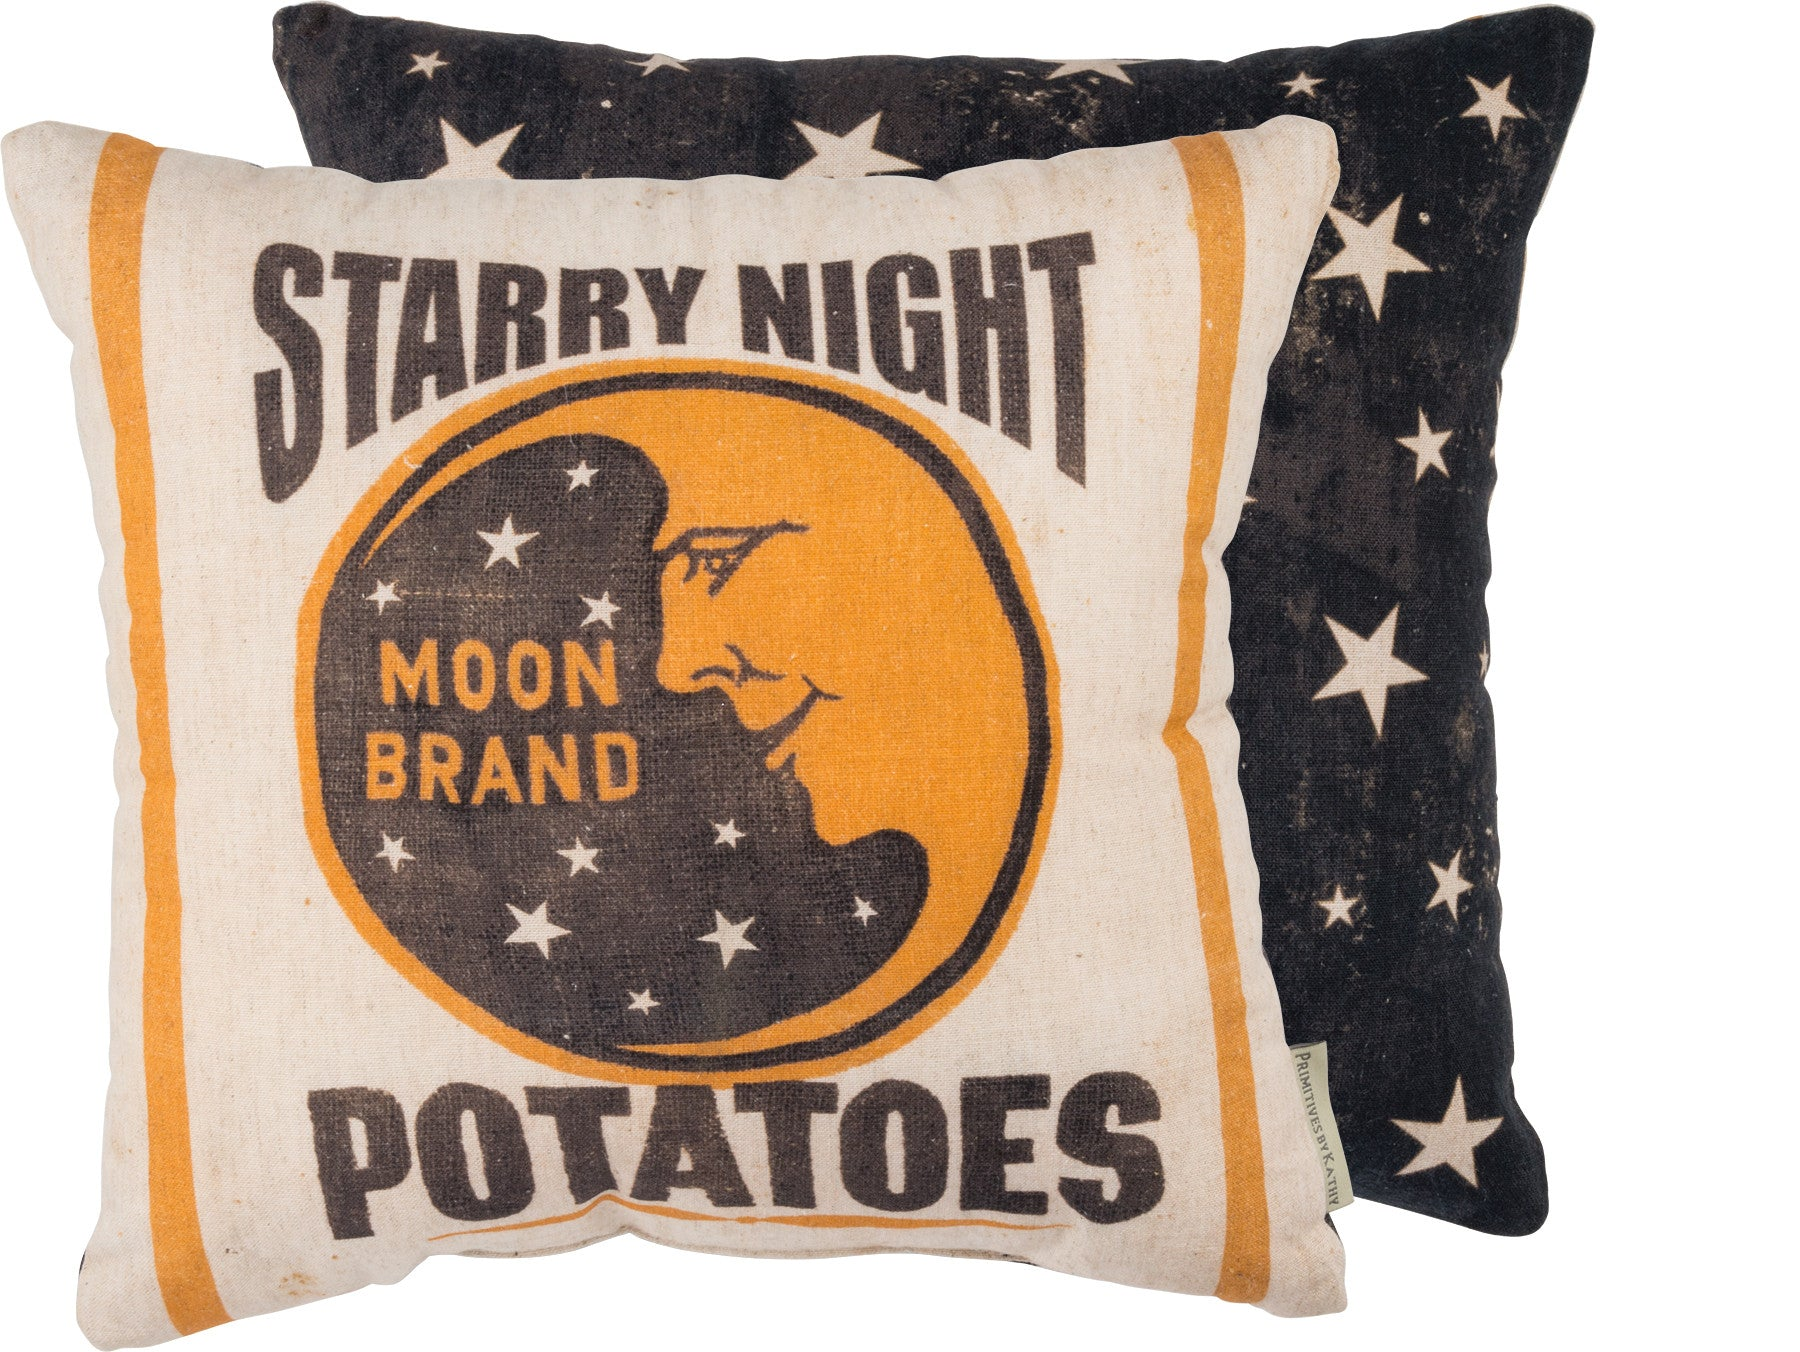 Starry Night Moon Pillow - Vintage Halloween Crescent